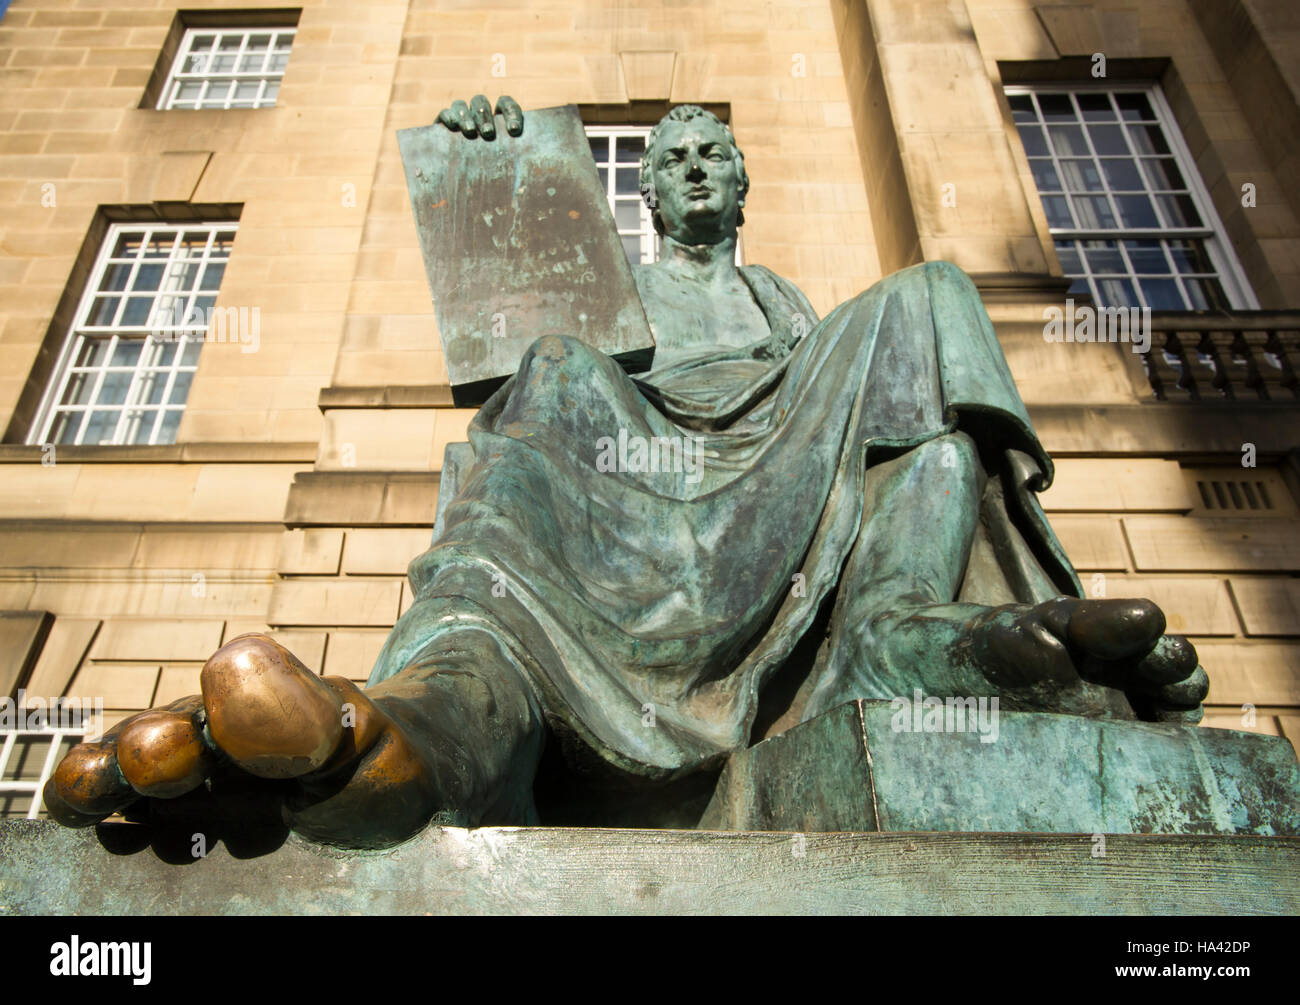 The statue of philosopher David Hume (1711 -1776) sits outside the High Court at the on Edinburgh's Royal Mile. - Stock Image